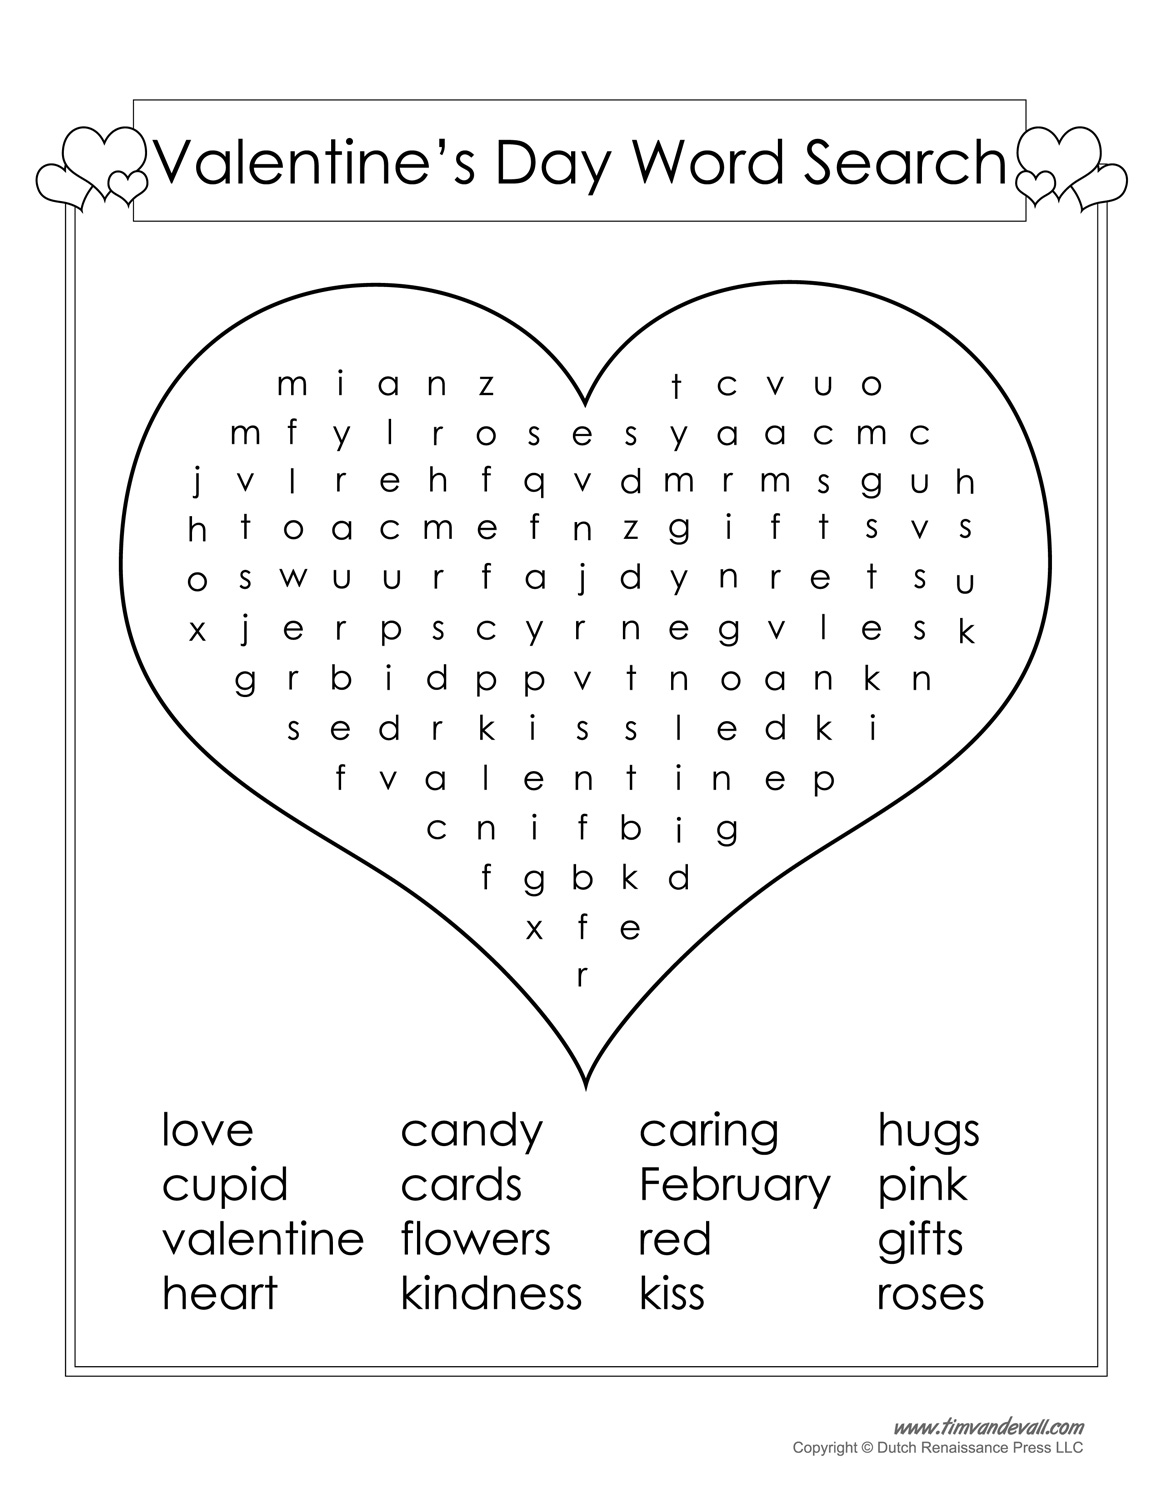 photo regarding Valentine's Day Word Search Printable referred to as 12 Valentines Working day Phrase Glimpse